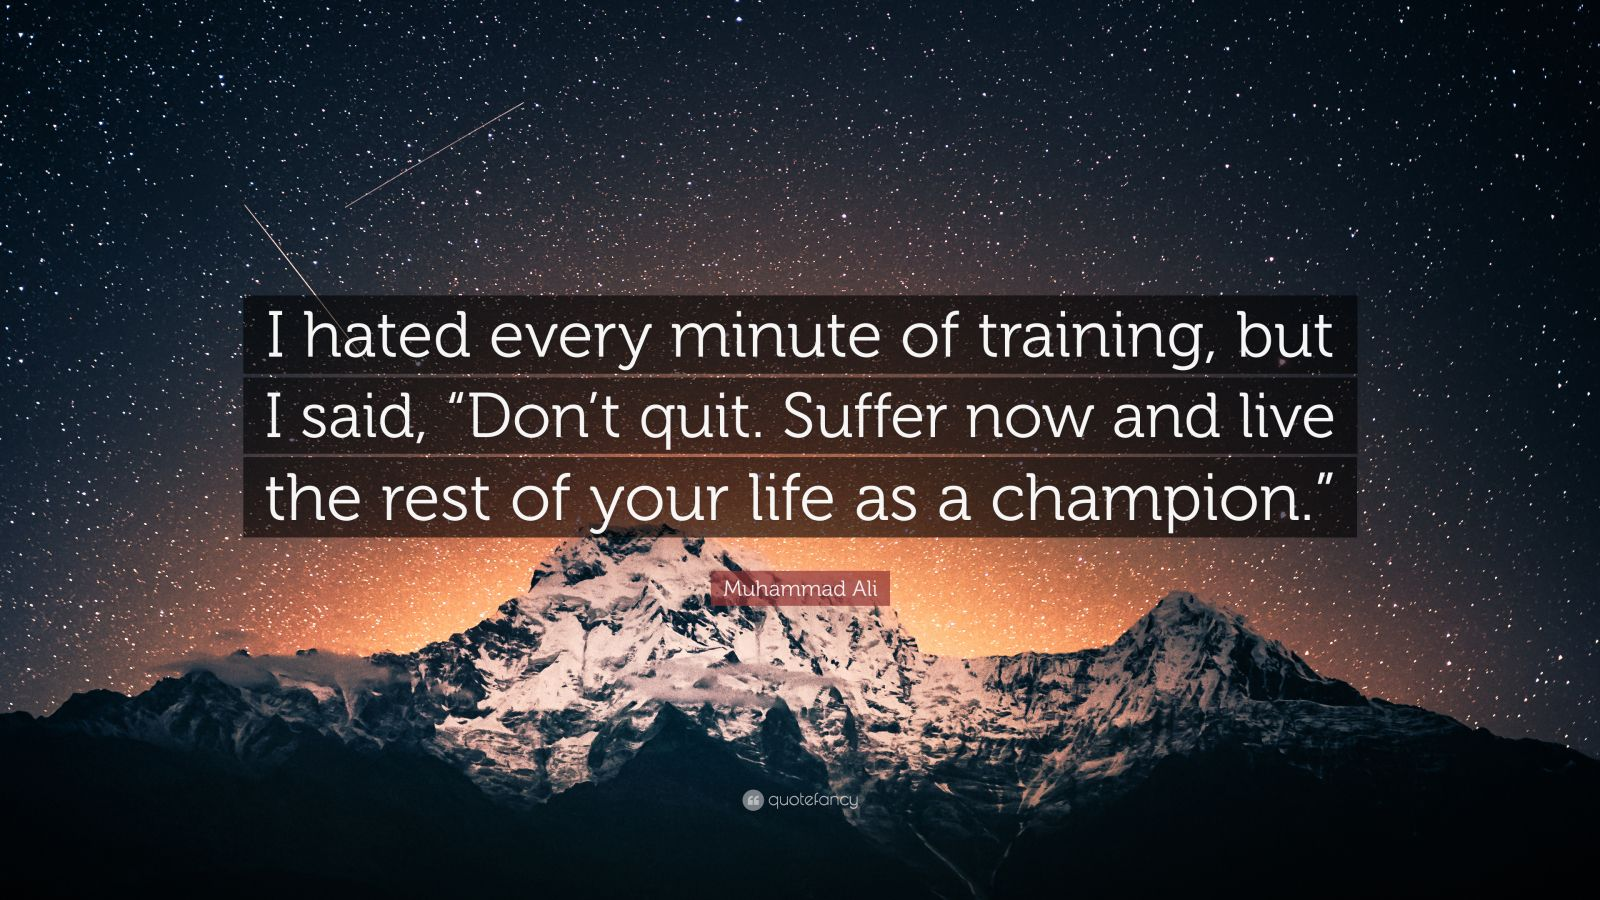 Motivational Quotes  100 wallpapers    Quotefancy Motivational Quotes     I hated every minute of training  but I said